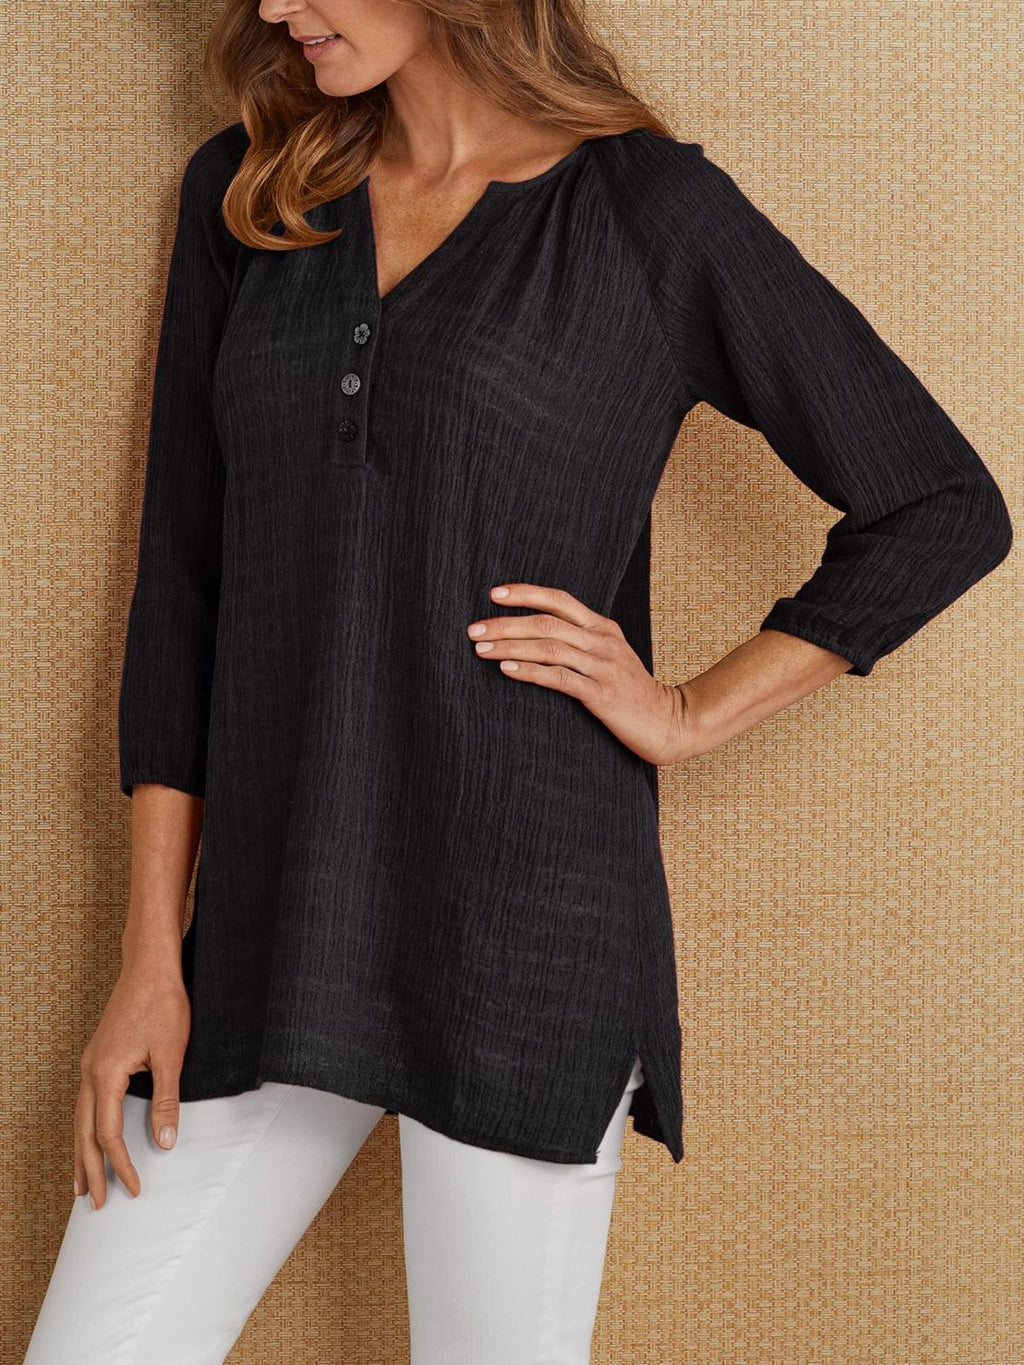 3/4 Sleeve Casual Blouse